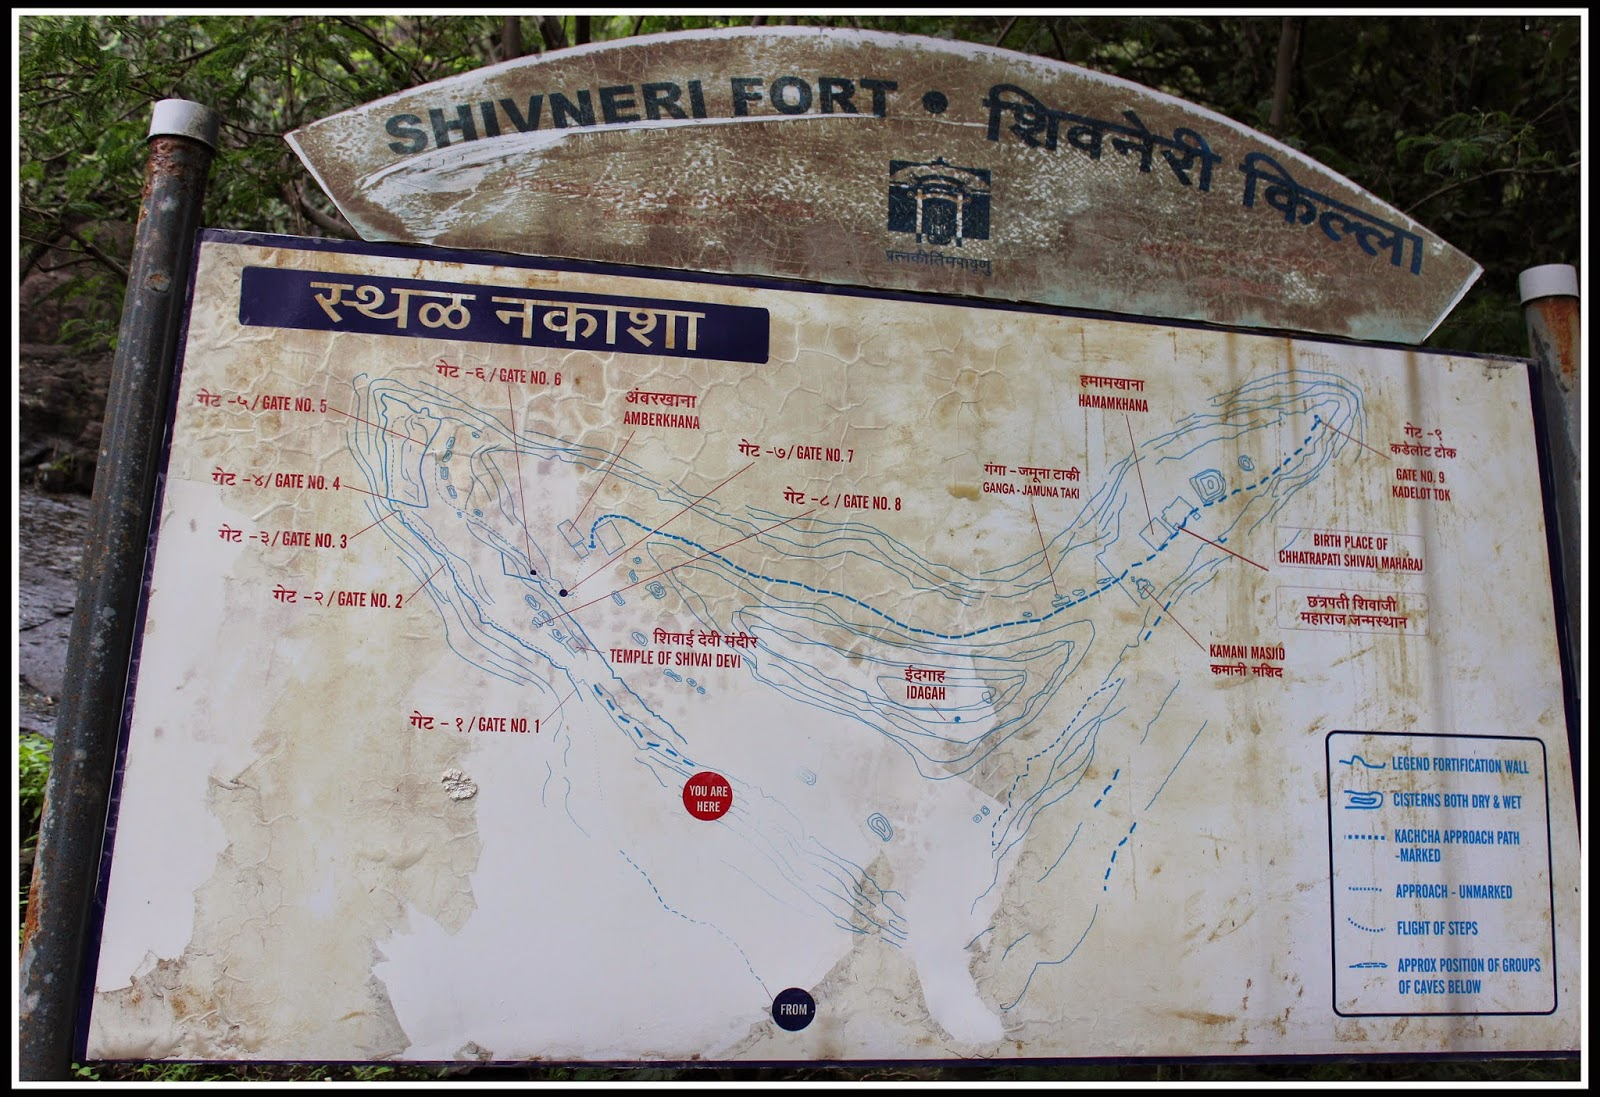 Shivneri Fort Map